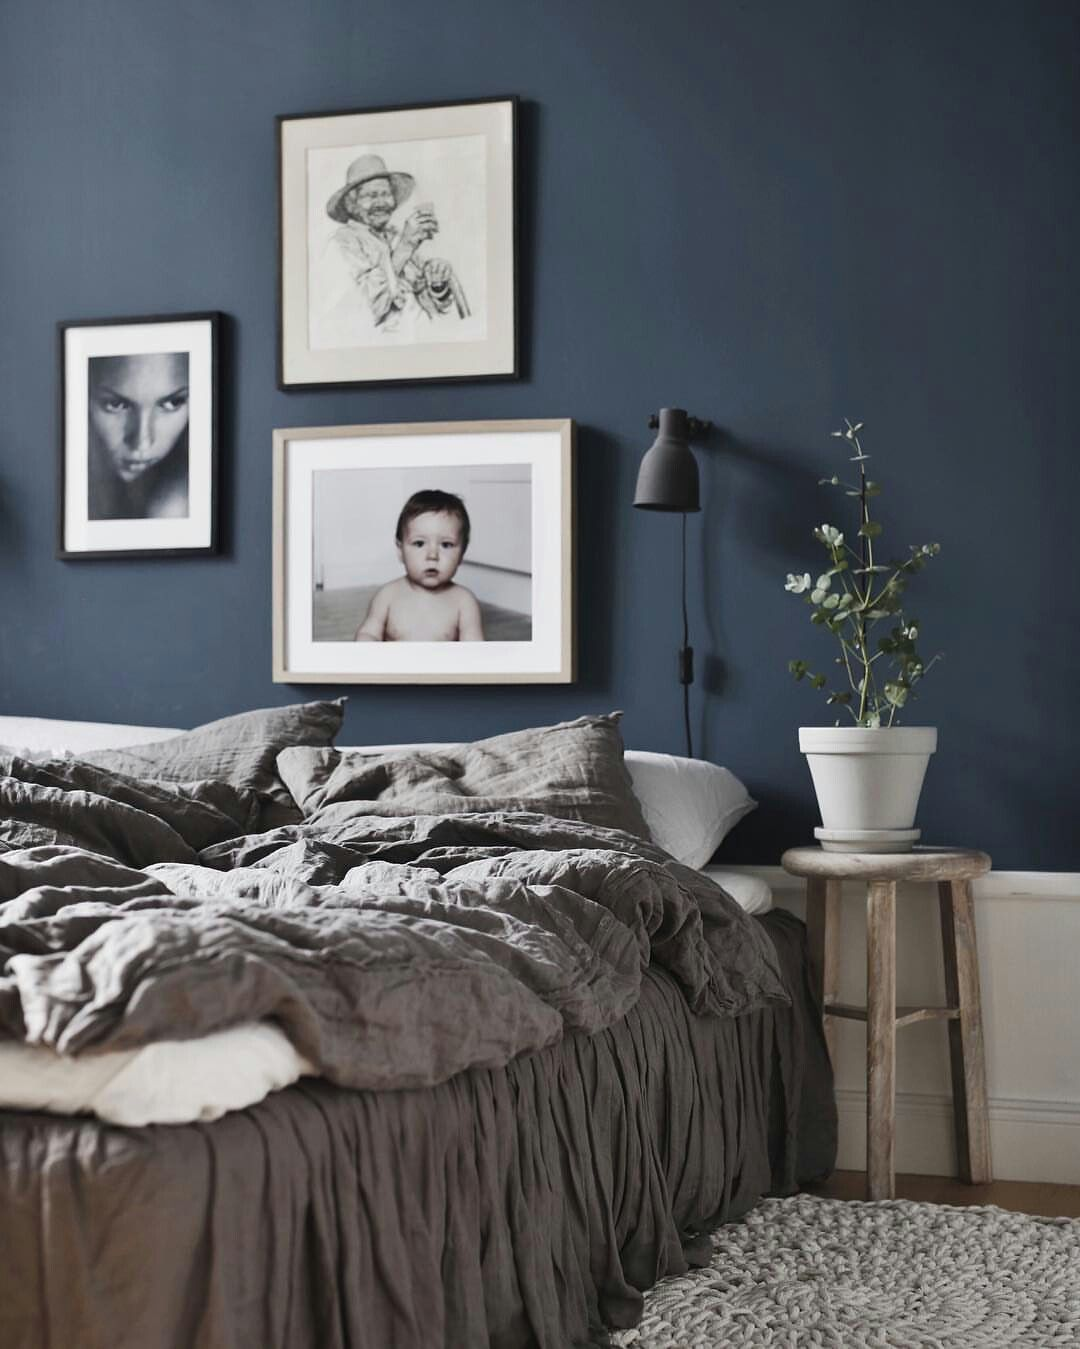 Dark Blue Bedroom Wall Dark Blue Bedroom Walls Dark Blue Bedrooms Gray Bedroom Walls